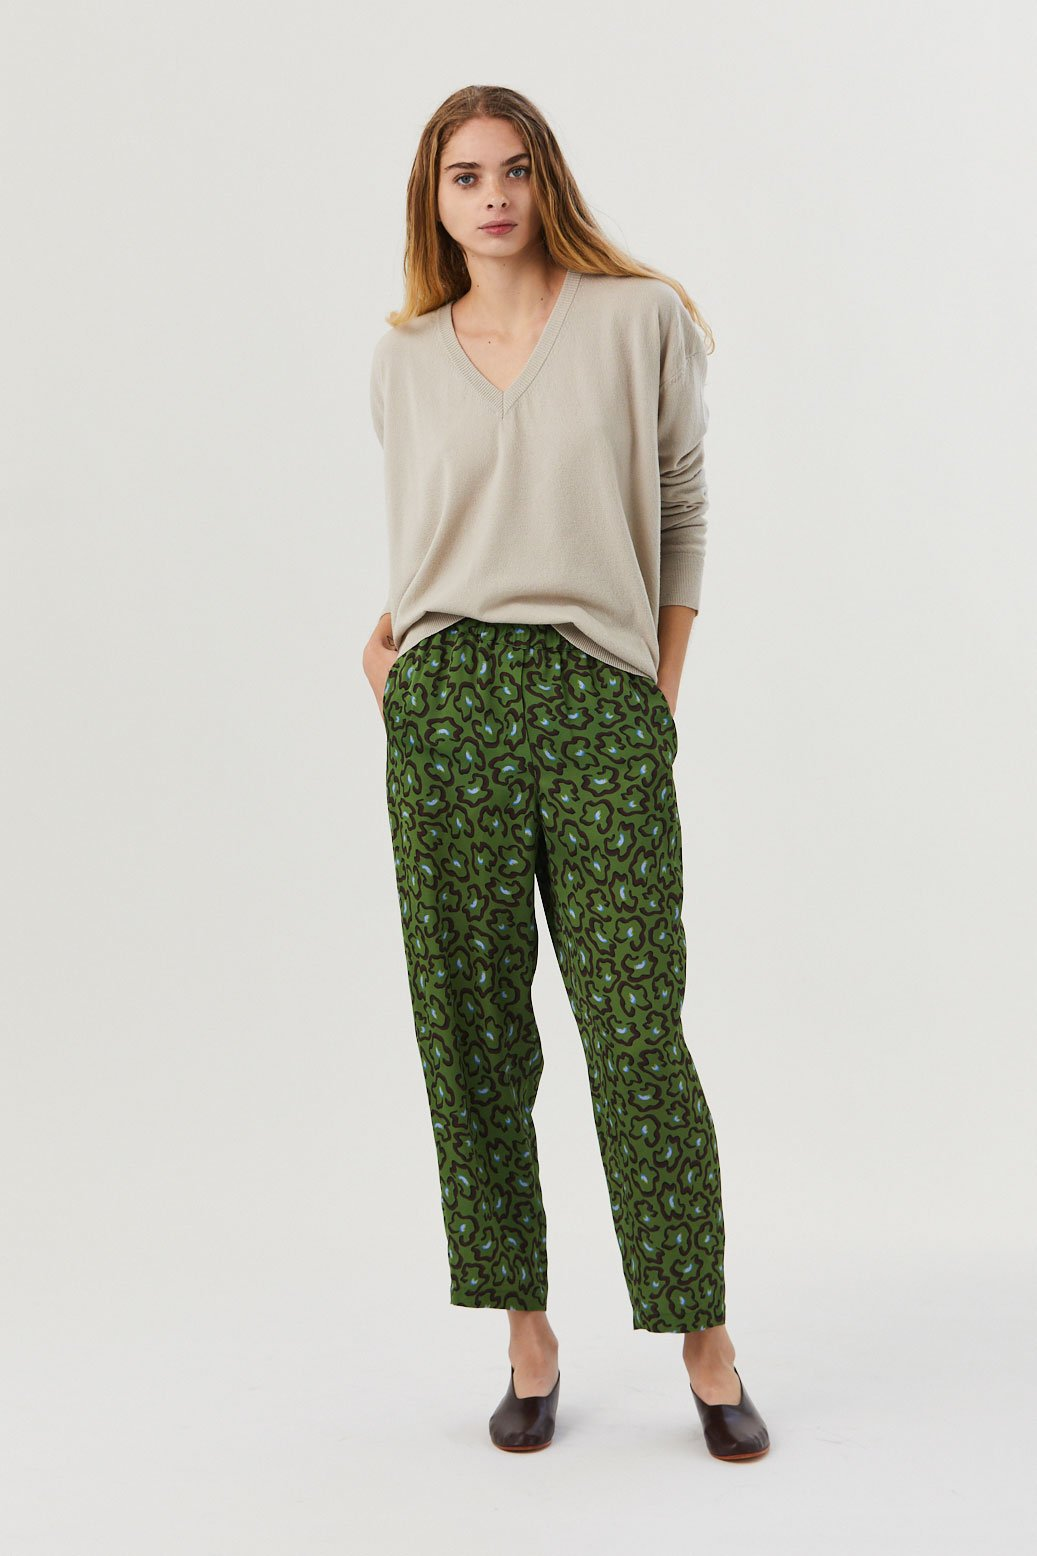 Christian Wijnants - Paney Pants, Leopard Green